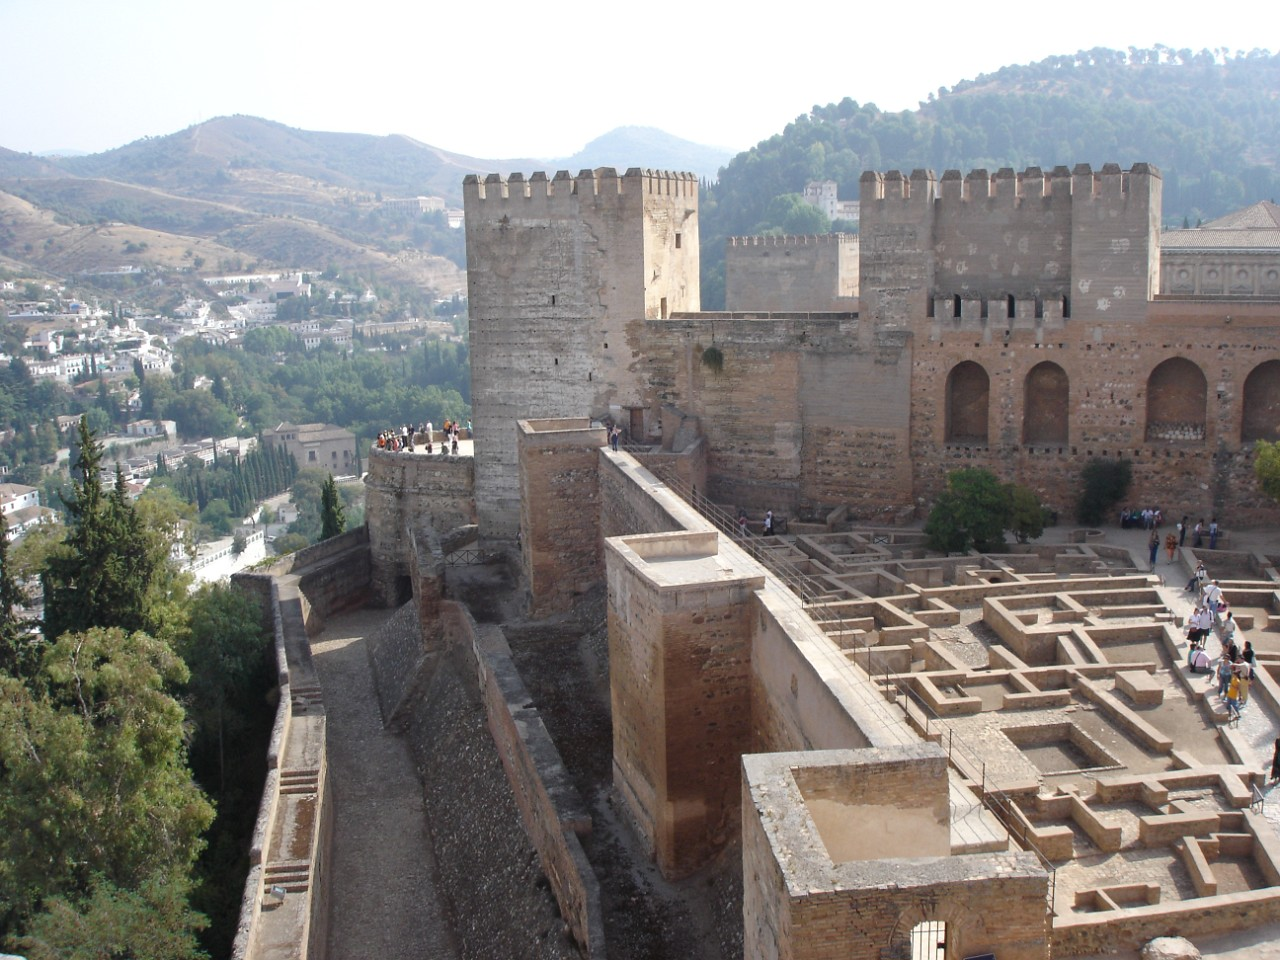 Alcazaba, the oldest part of Alhambra complex